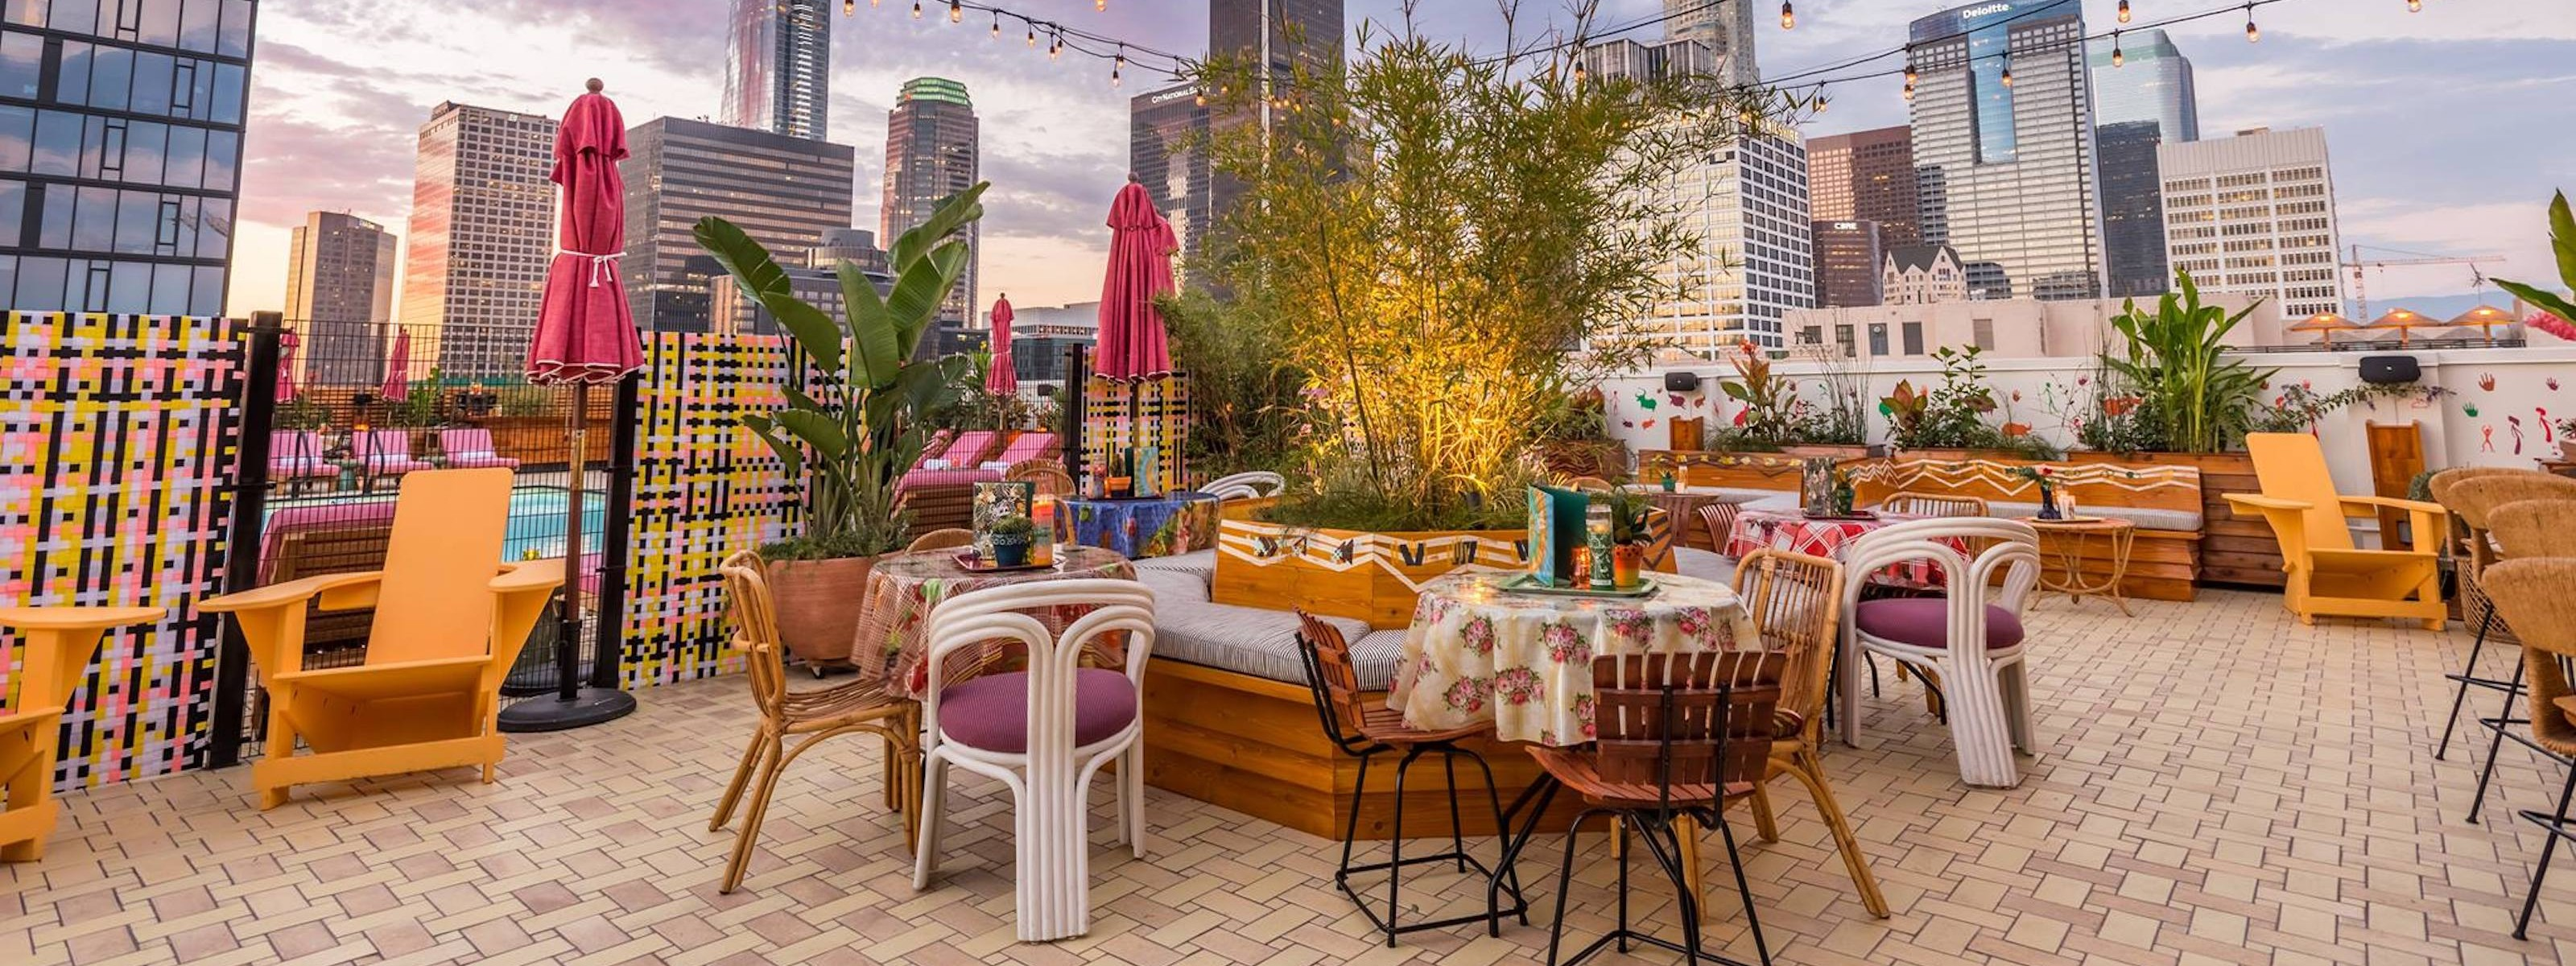 The Least Awful Rooftop Bars In La Los Angeles The